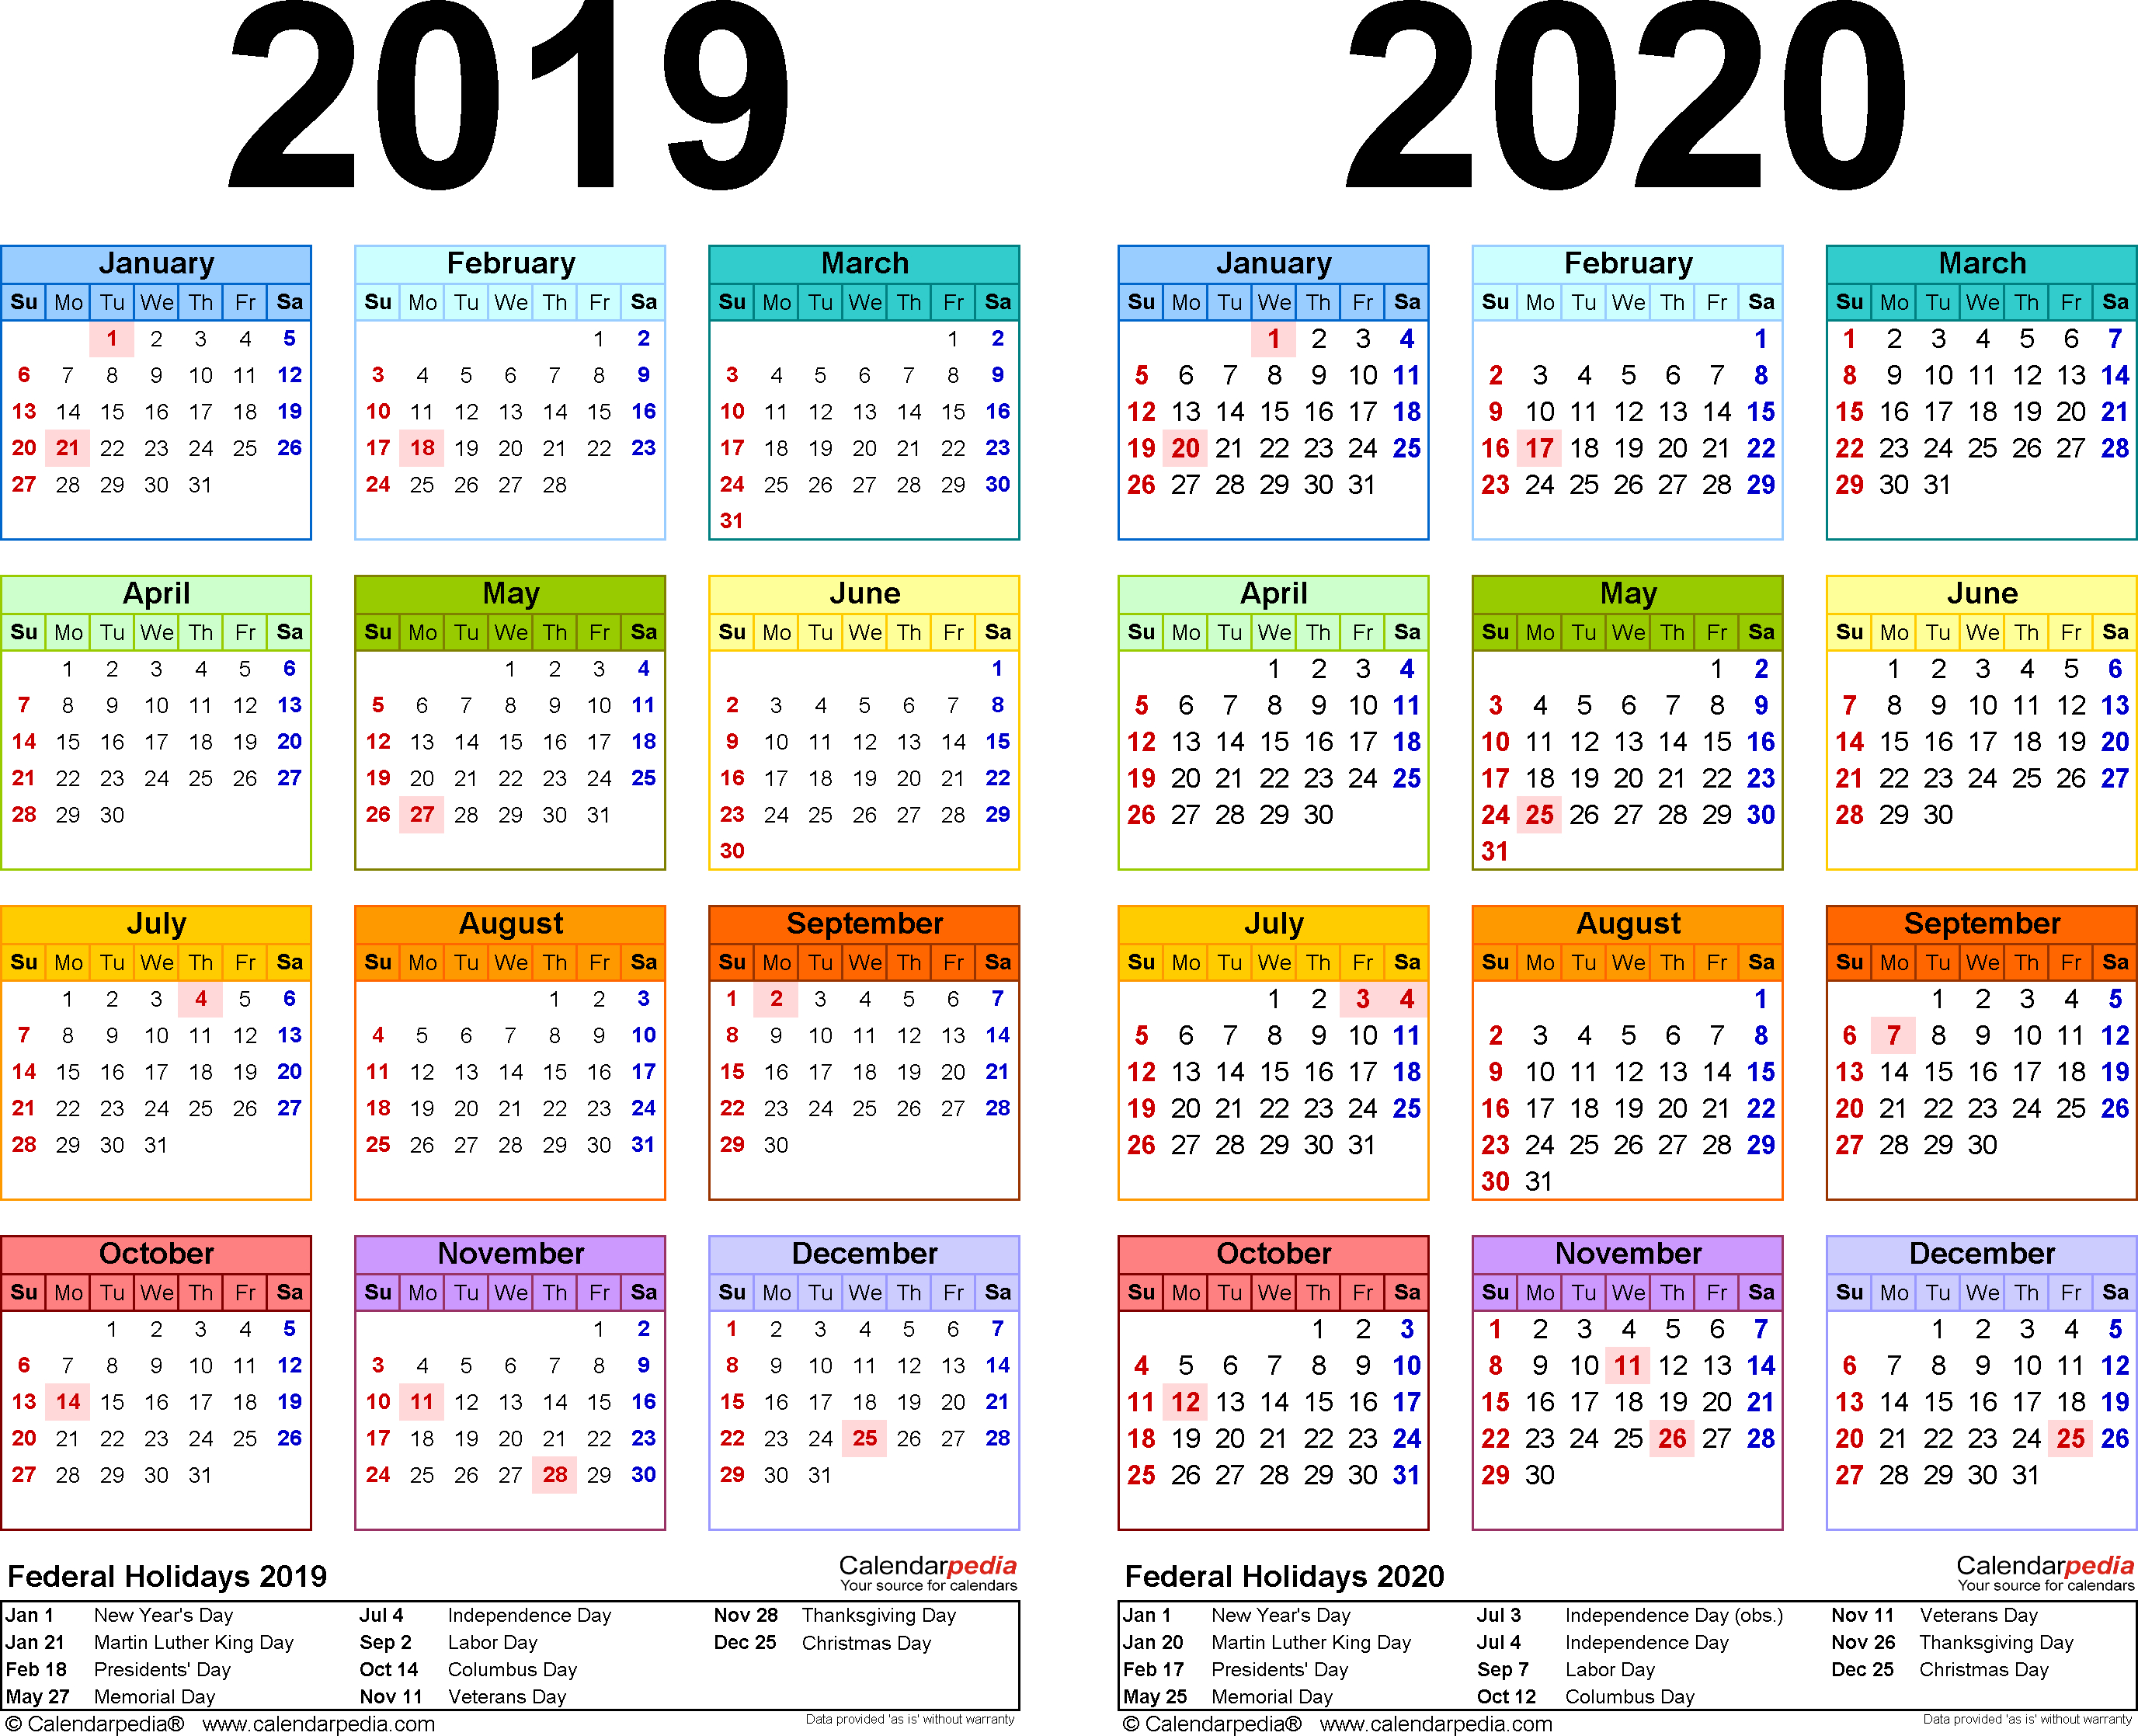 2019-2020 Calendar - Free Printable Two-Year Pdf Calendars intended for Year At A Glance Printable Calendar 2019/2020